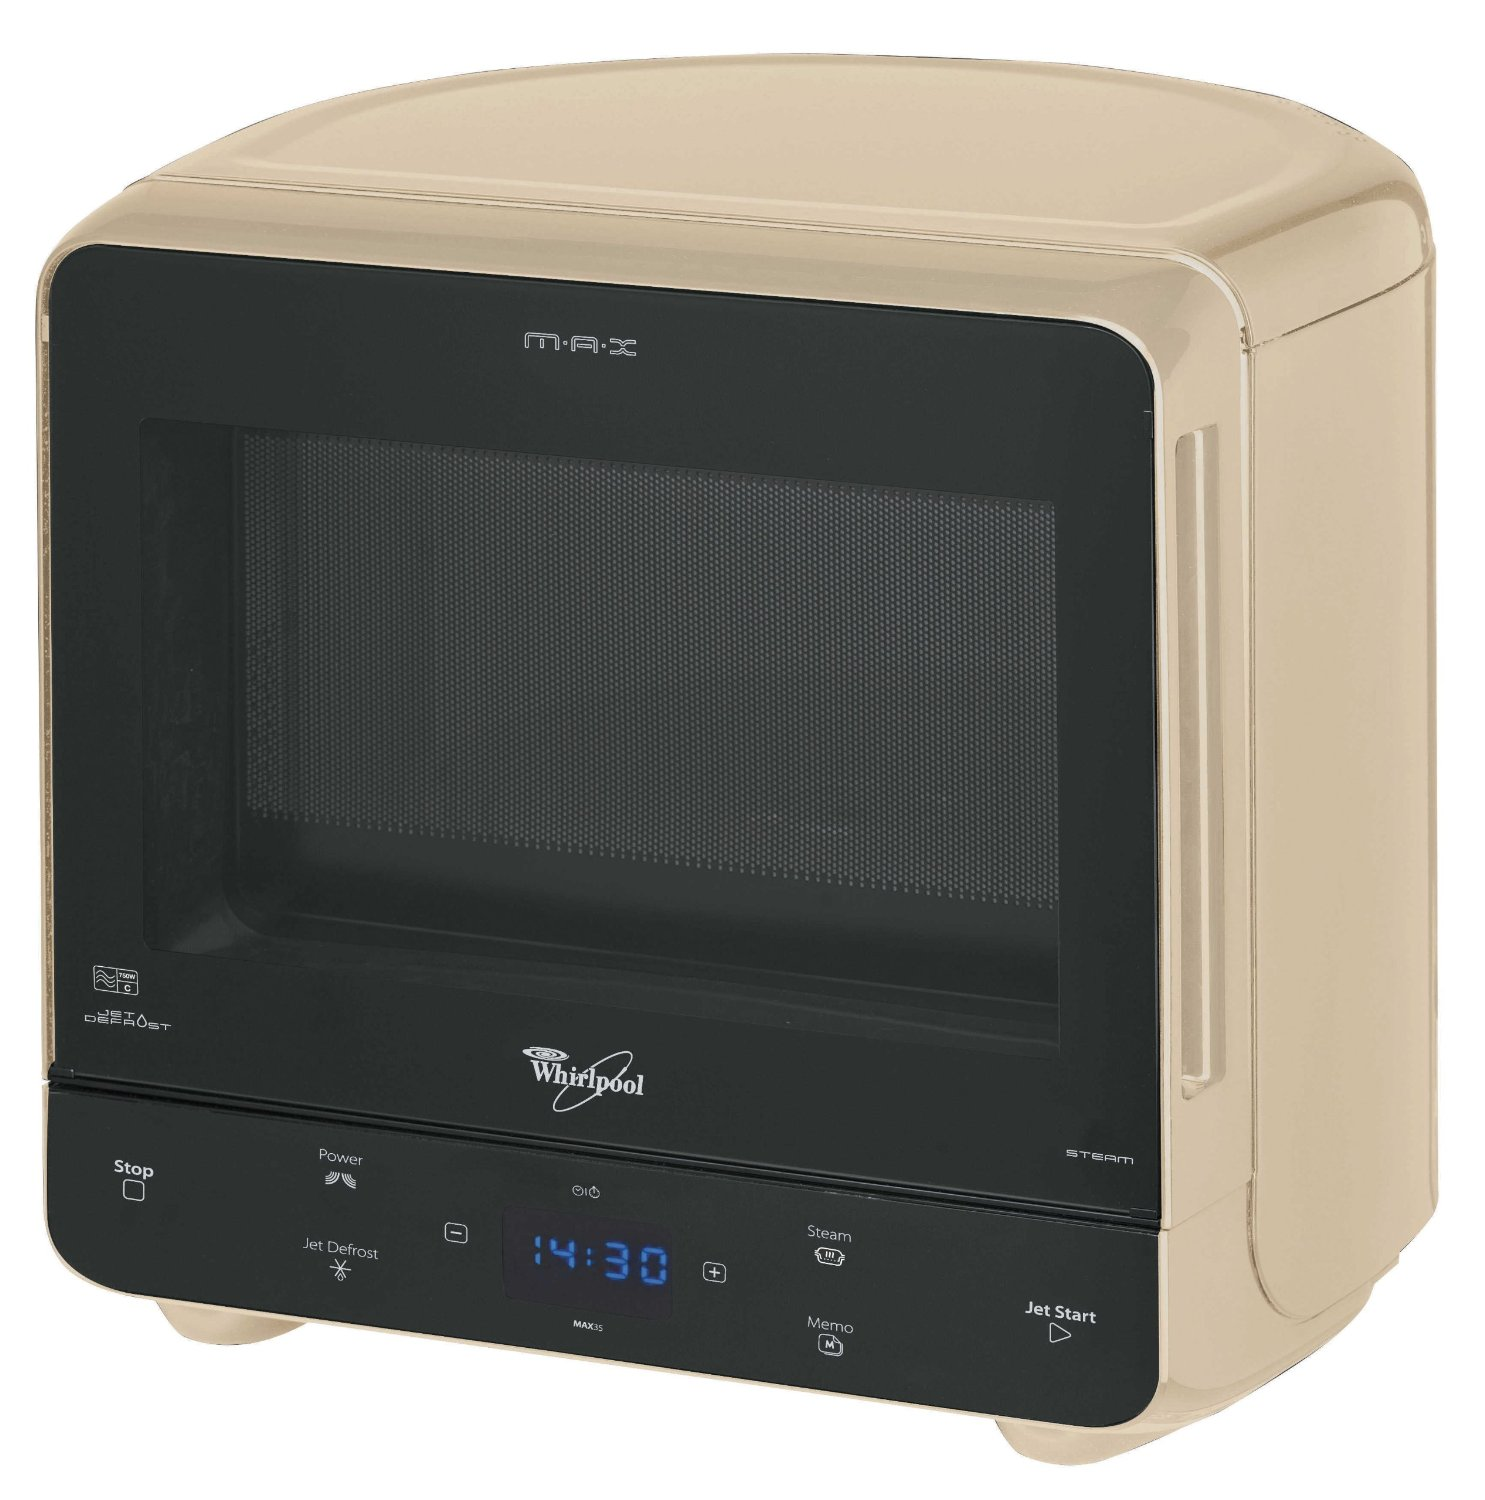 Whirlpool Max 35 Solo and Steam Microwave Review (cream